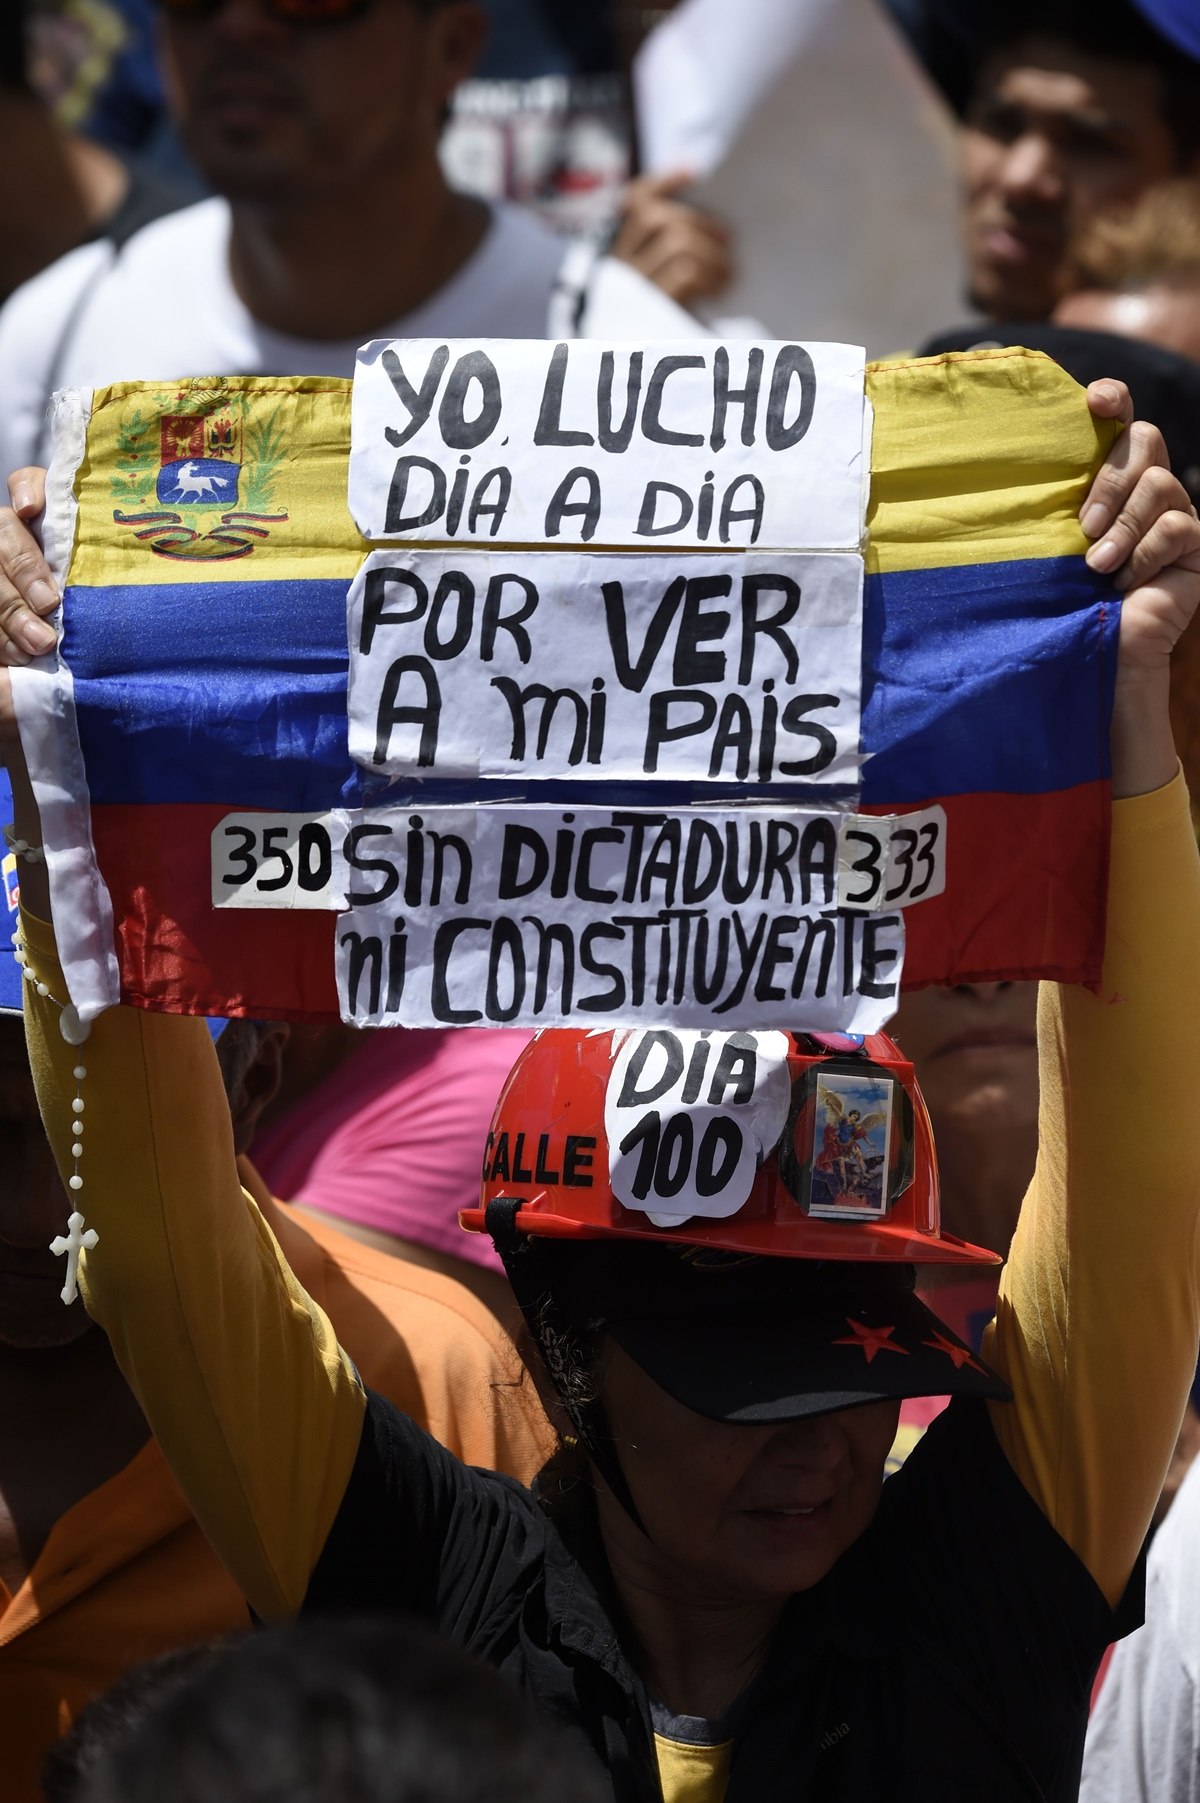 An opposition activist demonstrates against Venezuelan President Nicolas Maduro in Caracas, on July 9, 2017. Venezuela hit its 100th day of anti-government protests on Sunday, one day after its most prominent political prisoner, Leopoldo Lopez, vowed to continue his fight for freedom after being released from jail and placed under house arrest. At least 91 people have died since non-stop street protests began on April 1. / AFP PHOTO / Juan BARRETO